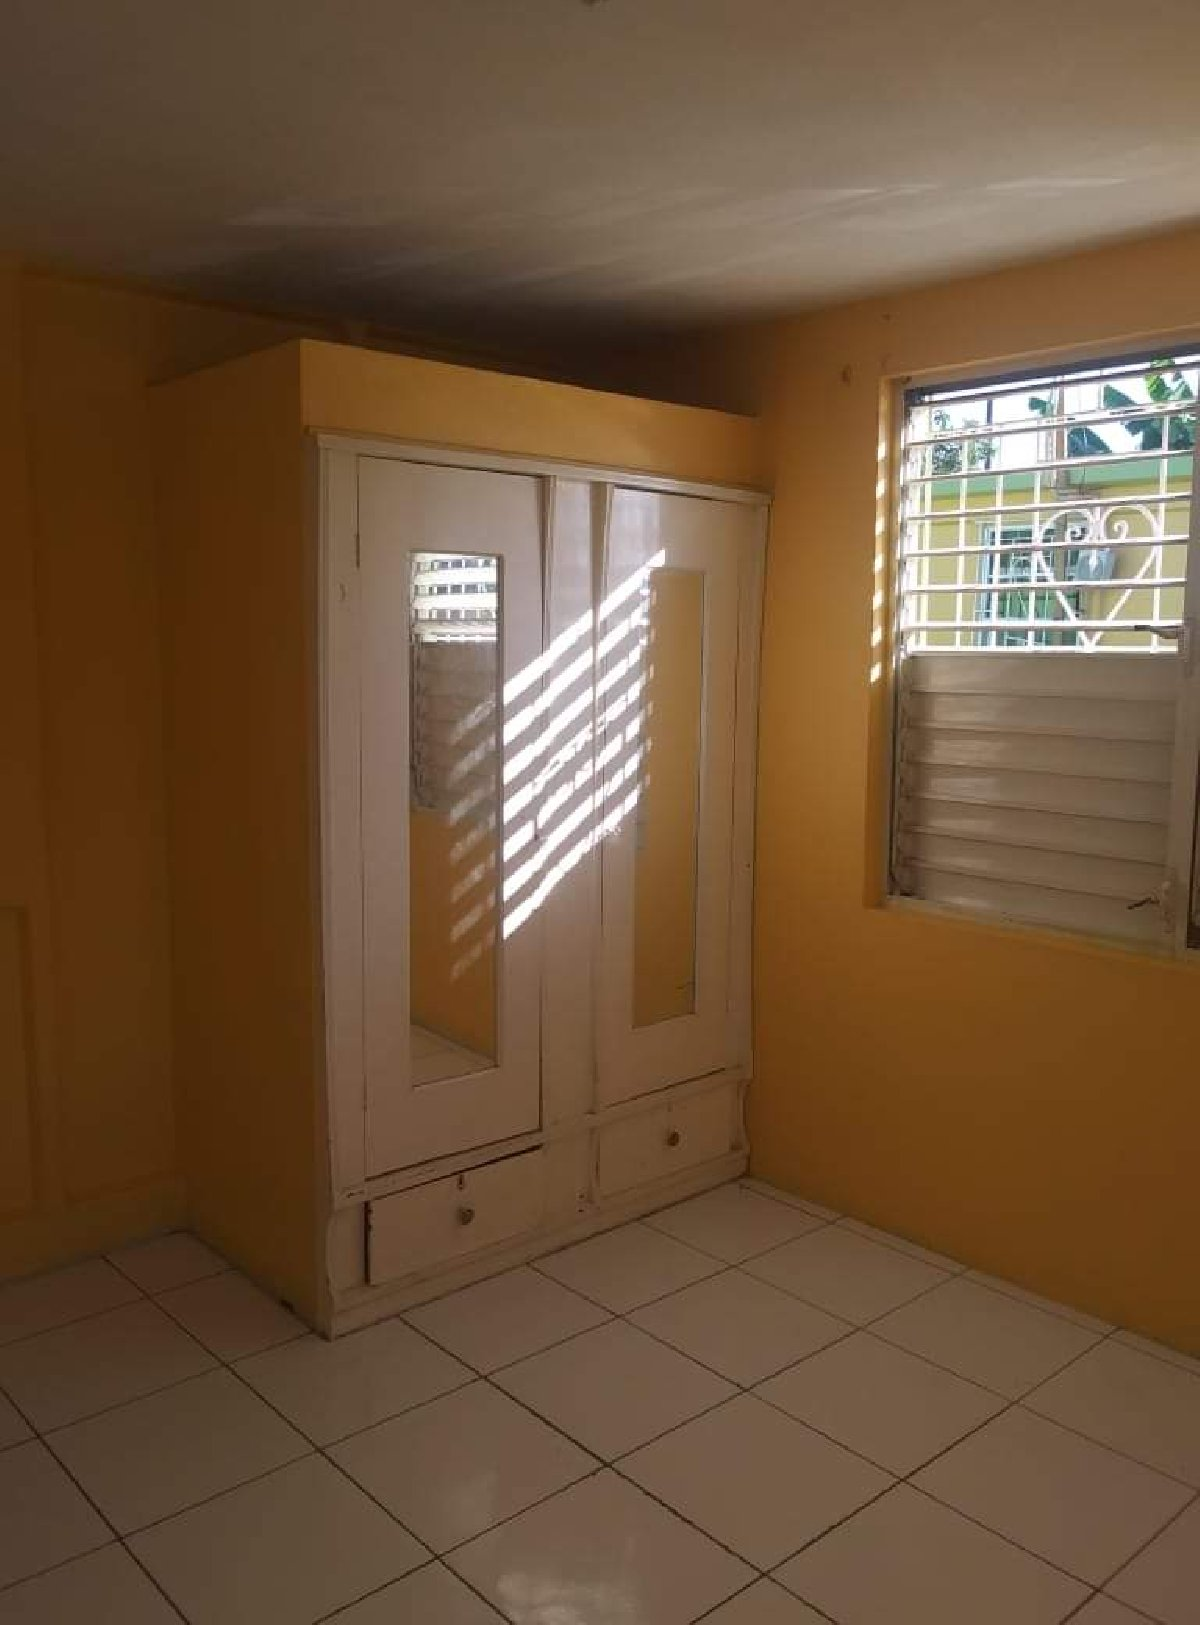 2 Bedroom 1 Bathroom House For Rent In Duhaney Park